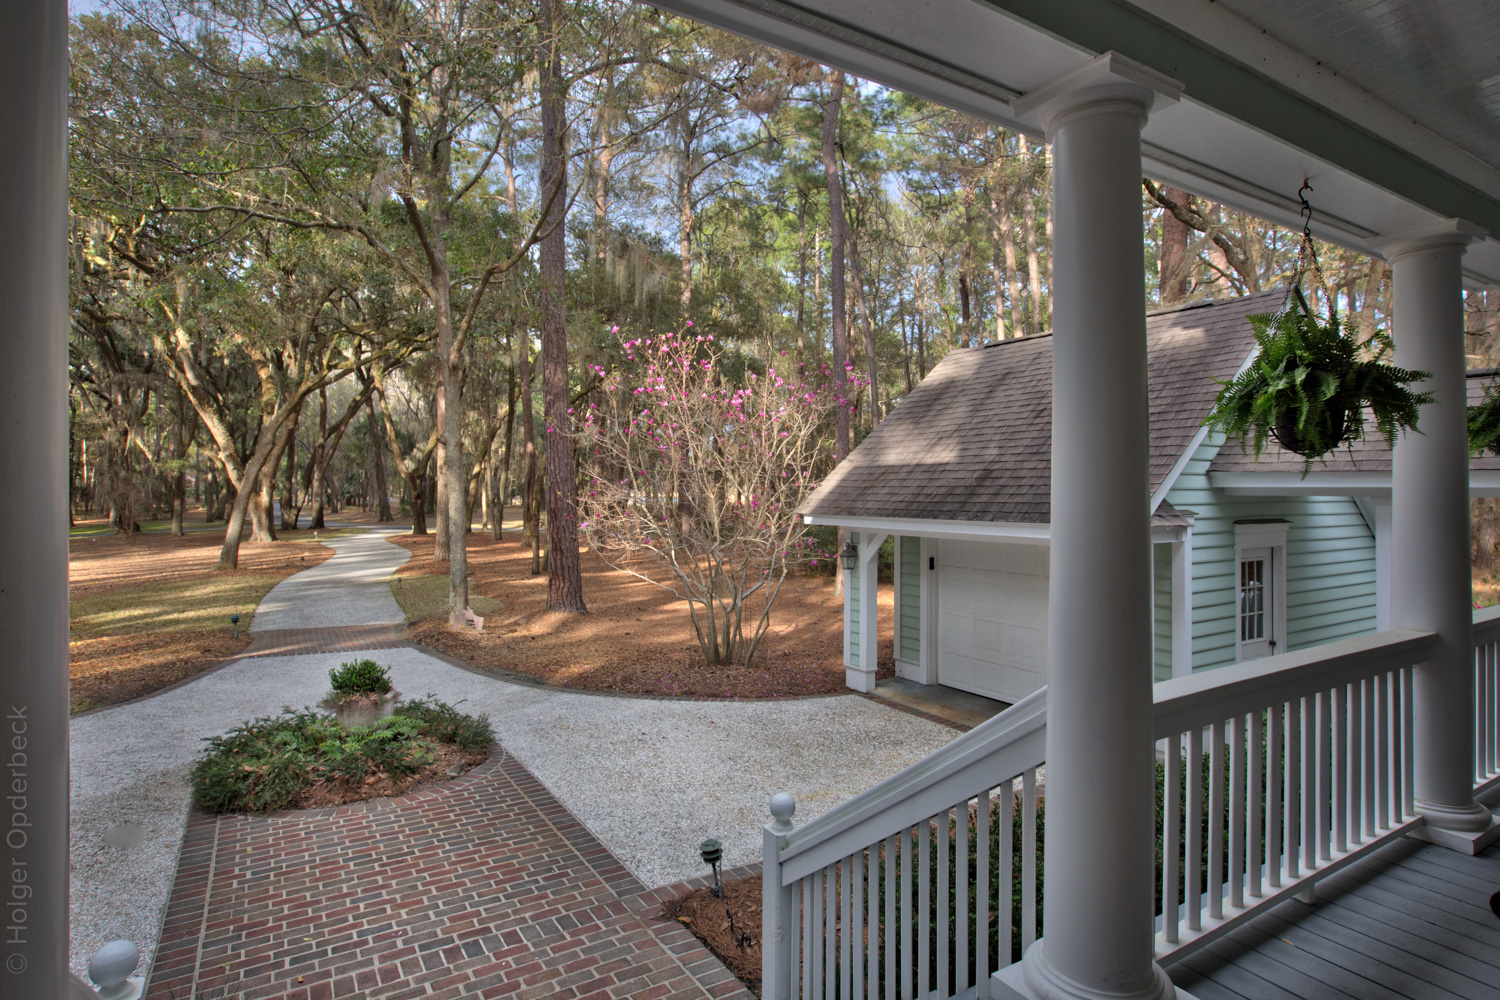 150 front-porch-right.jpg